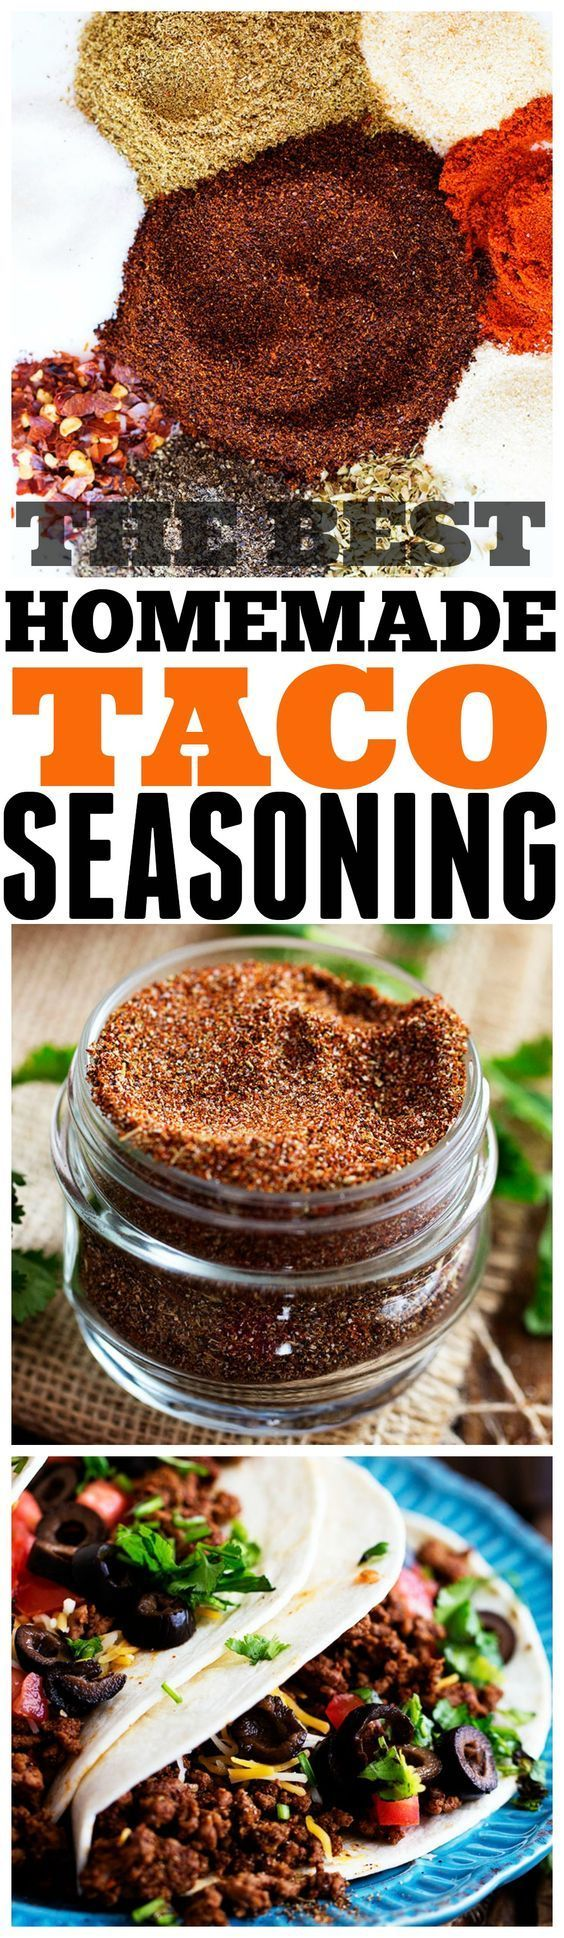 Best Homemade Taco Seasoning This is THE BEST homemade taco seasoning! Perfect amount of spices and you will never buy it again!This is THE BEST homemade taco seasoning! Perfect amount of spices and you will never buy it again!